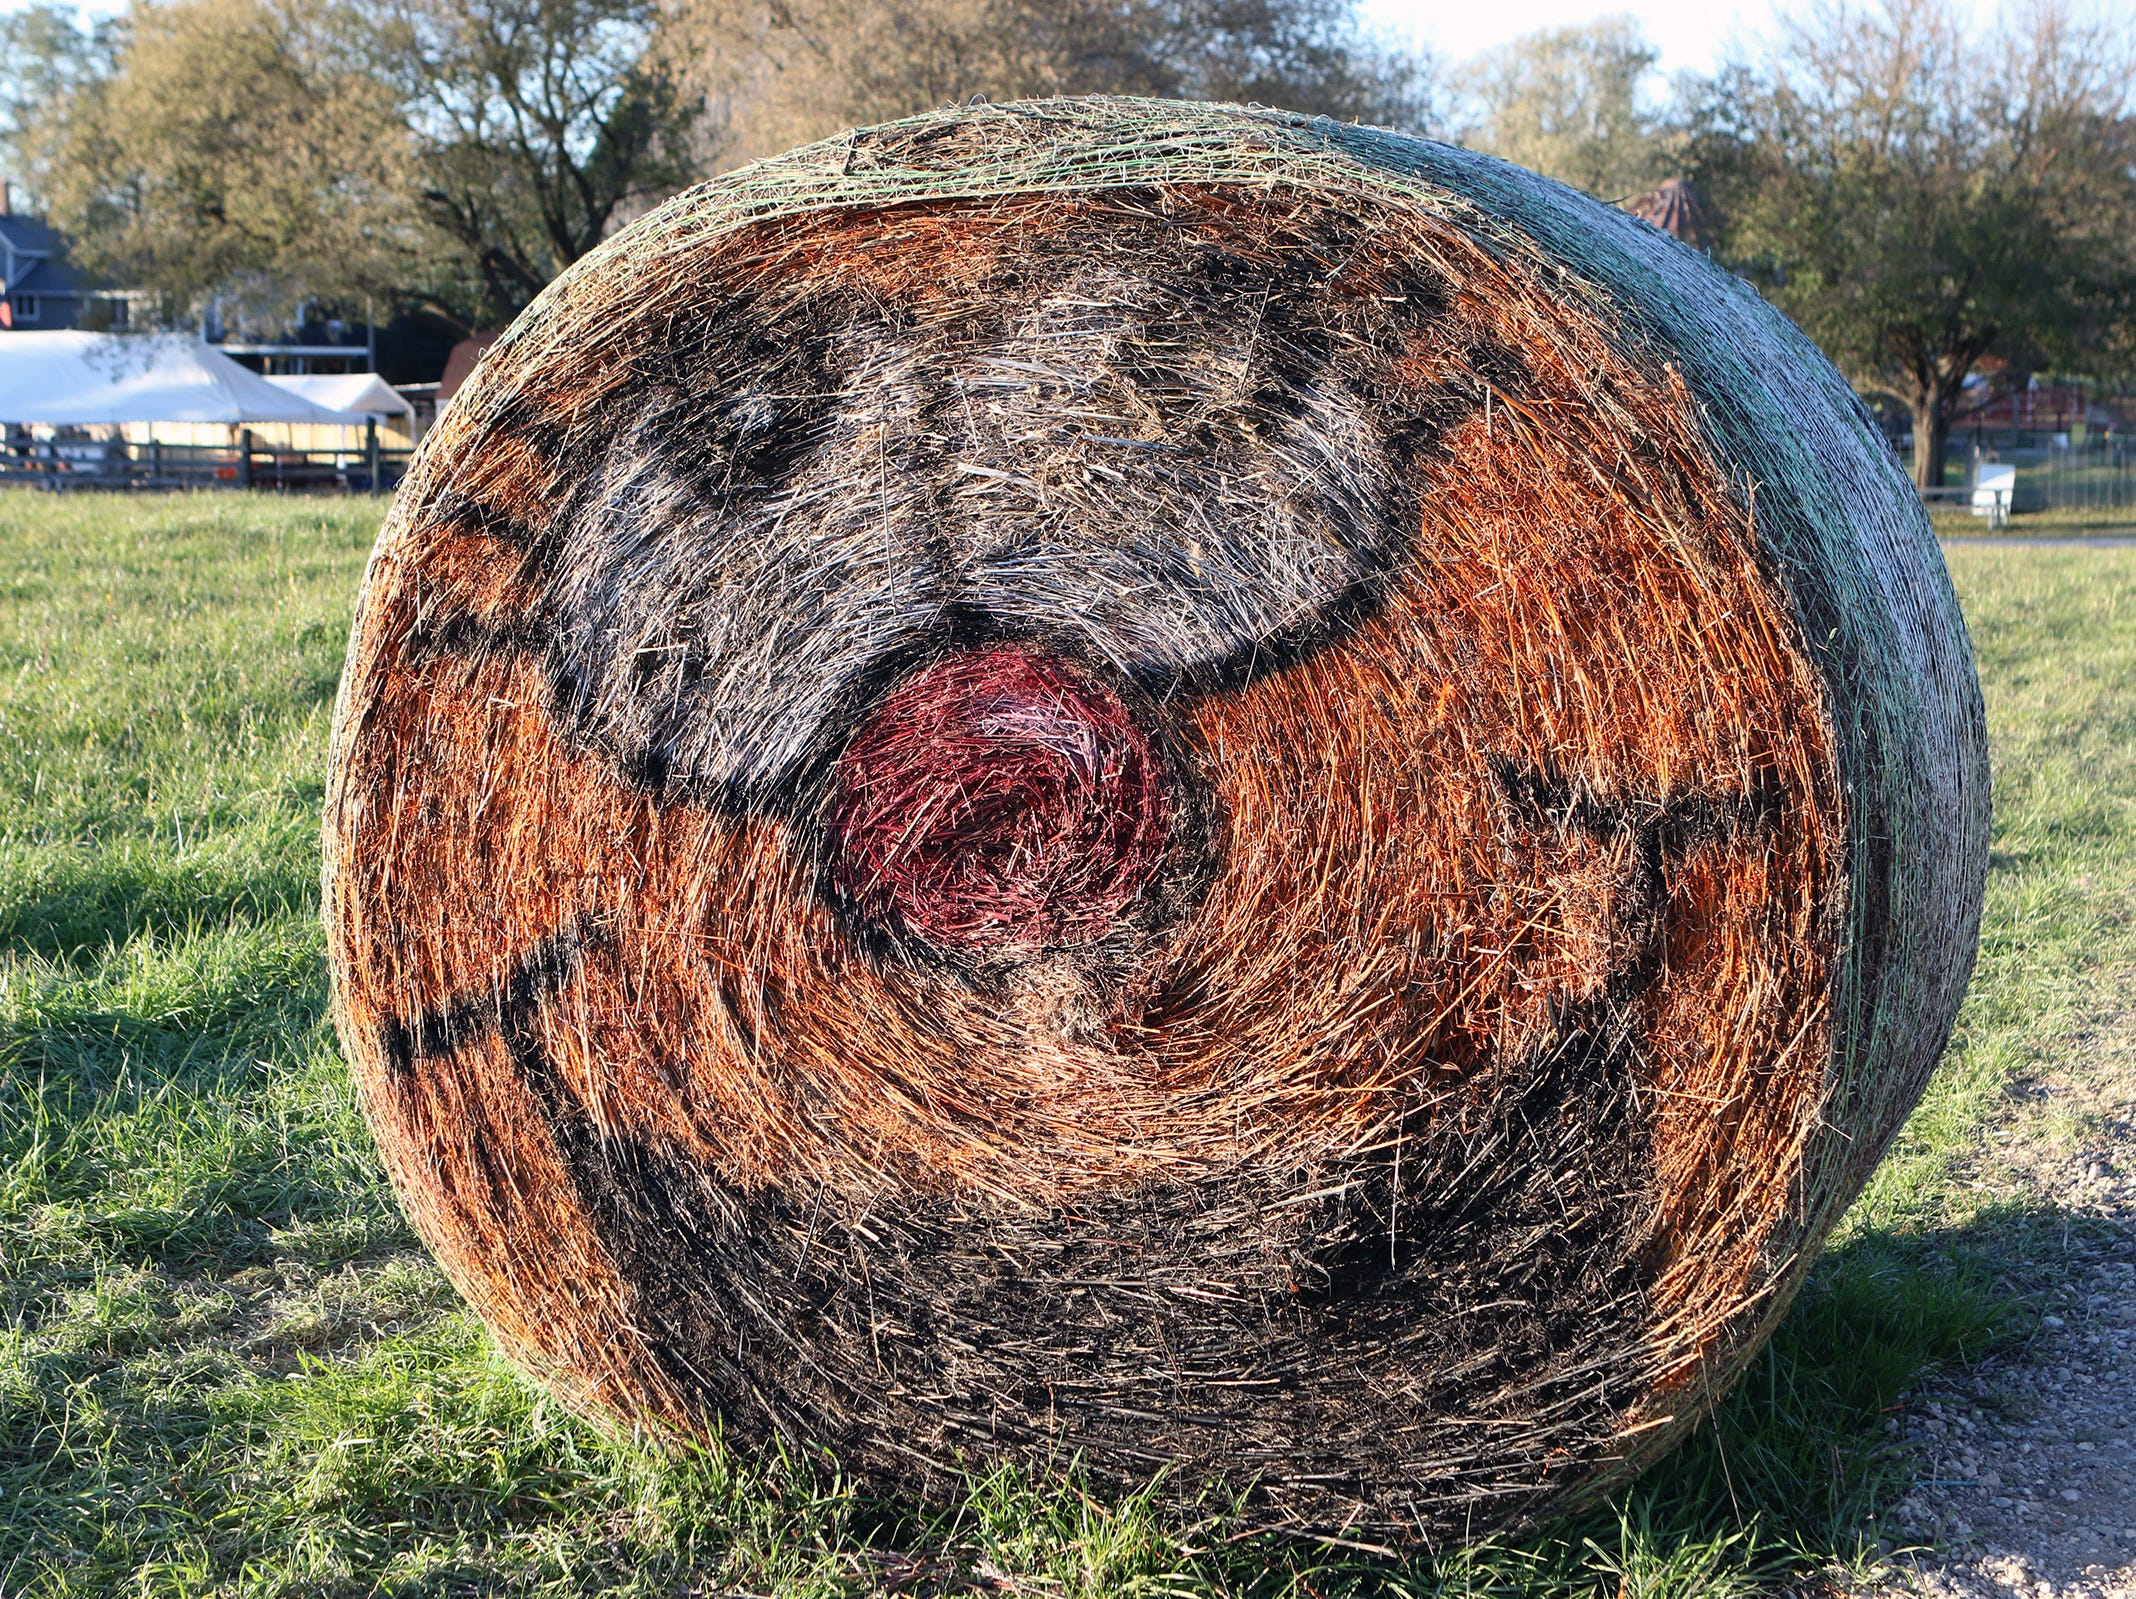 Faces painted on round bales greet visitors at Schuett Farms in Mukwonago.